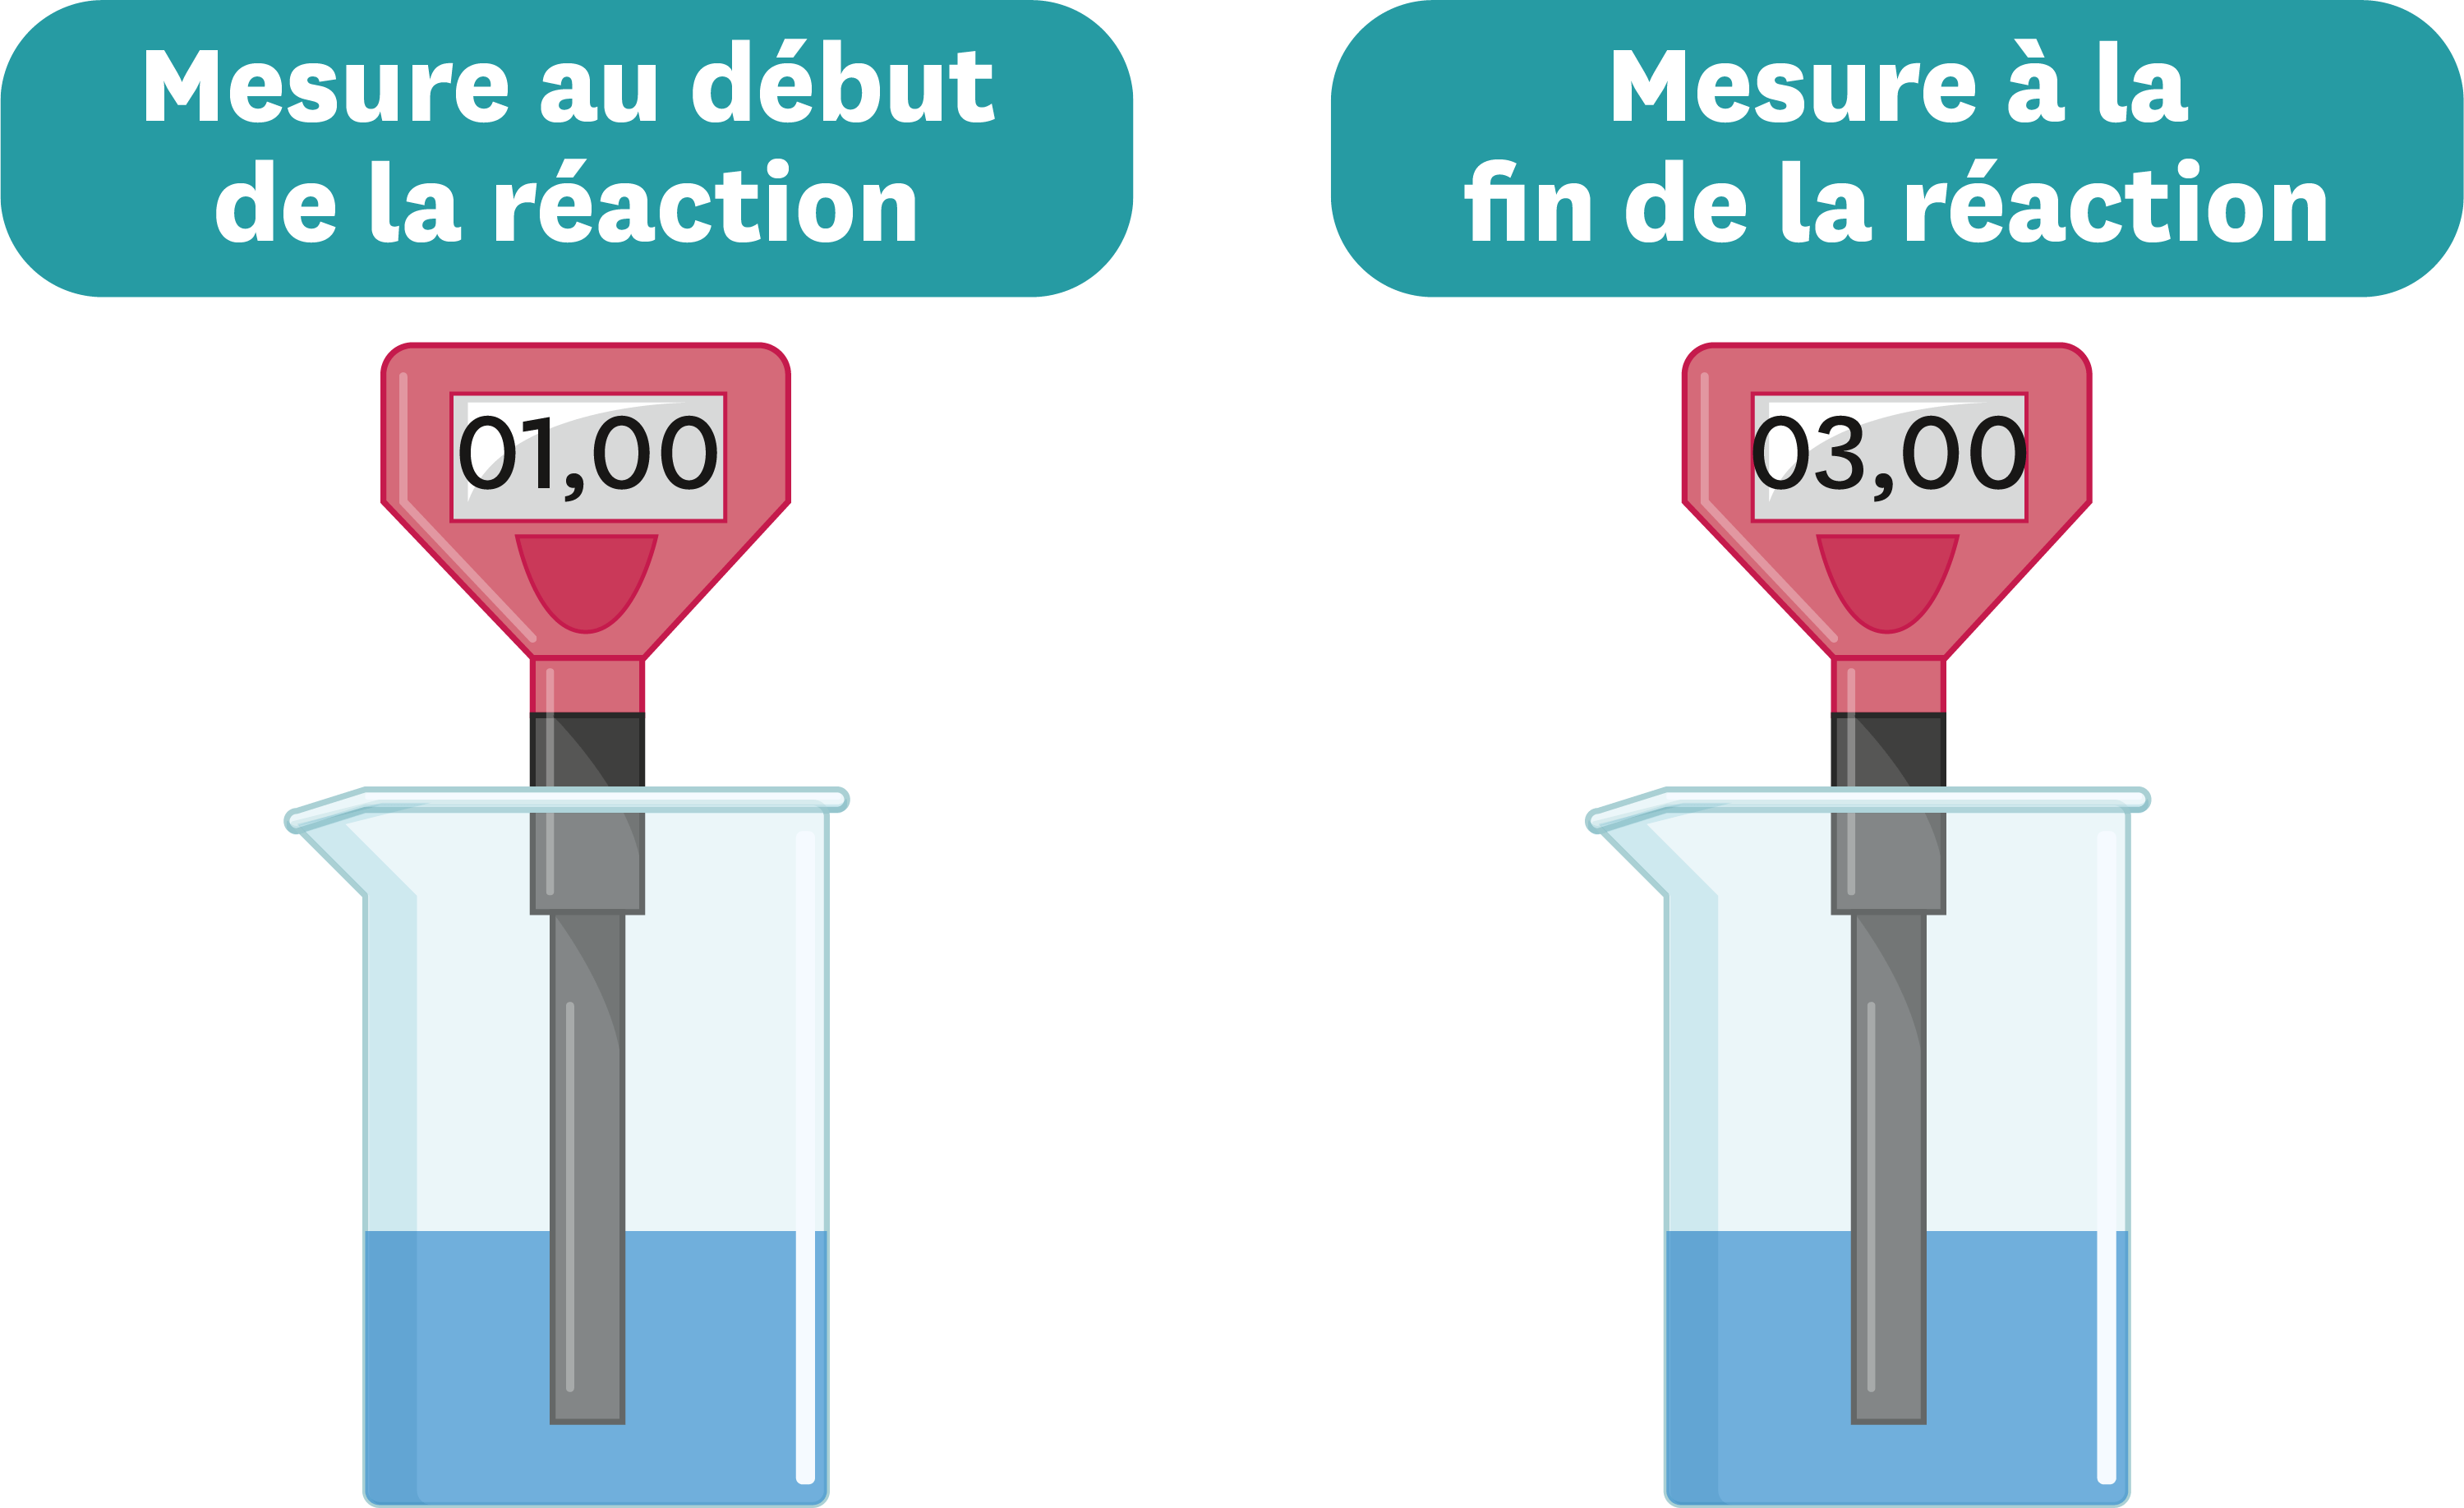 <stamp theme='pc-green1'>Doc. 4</stamp> Évolution du pH de la solution obtenue au cours de la réaction.